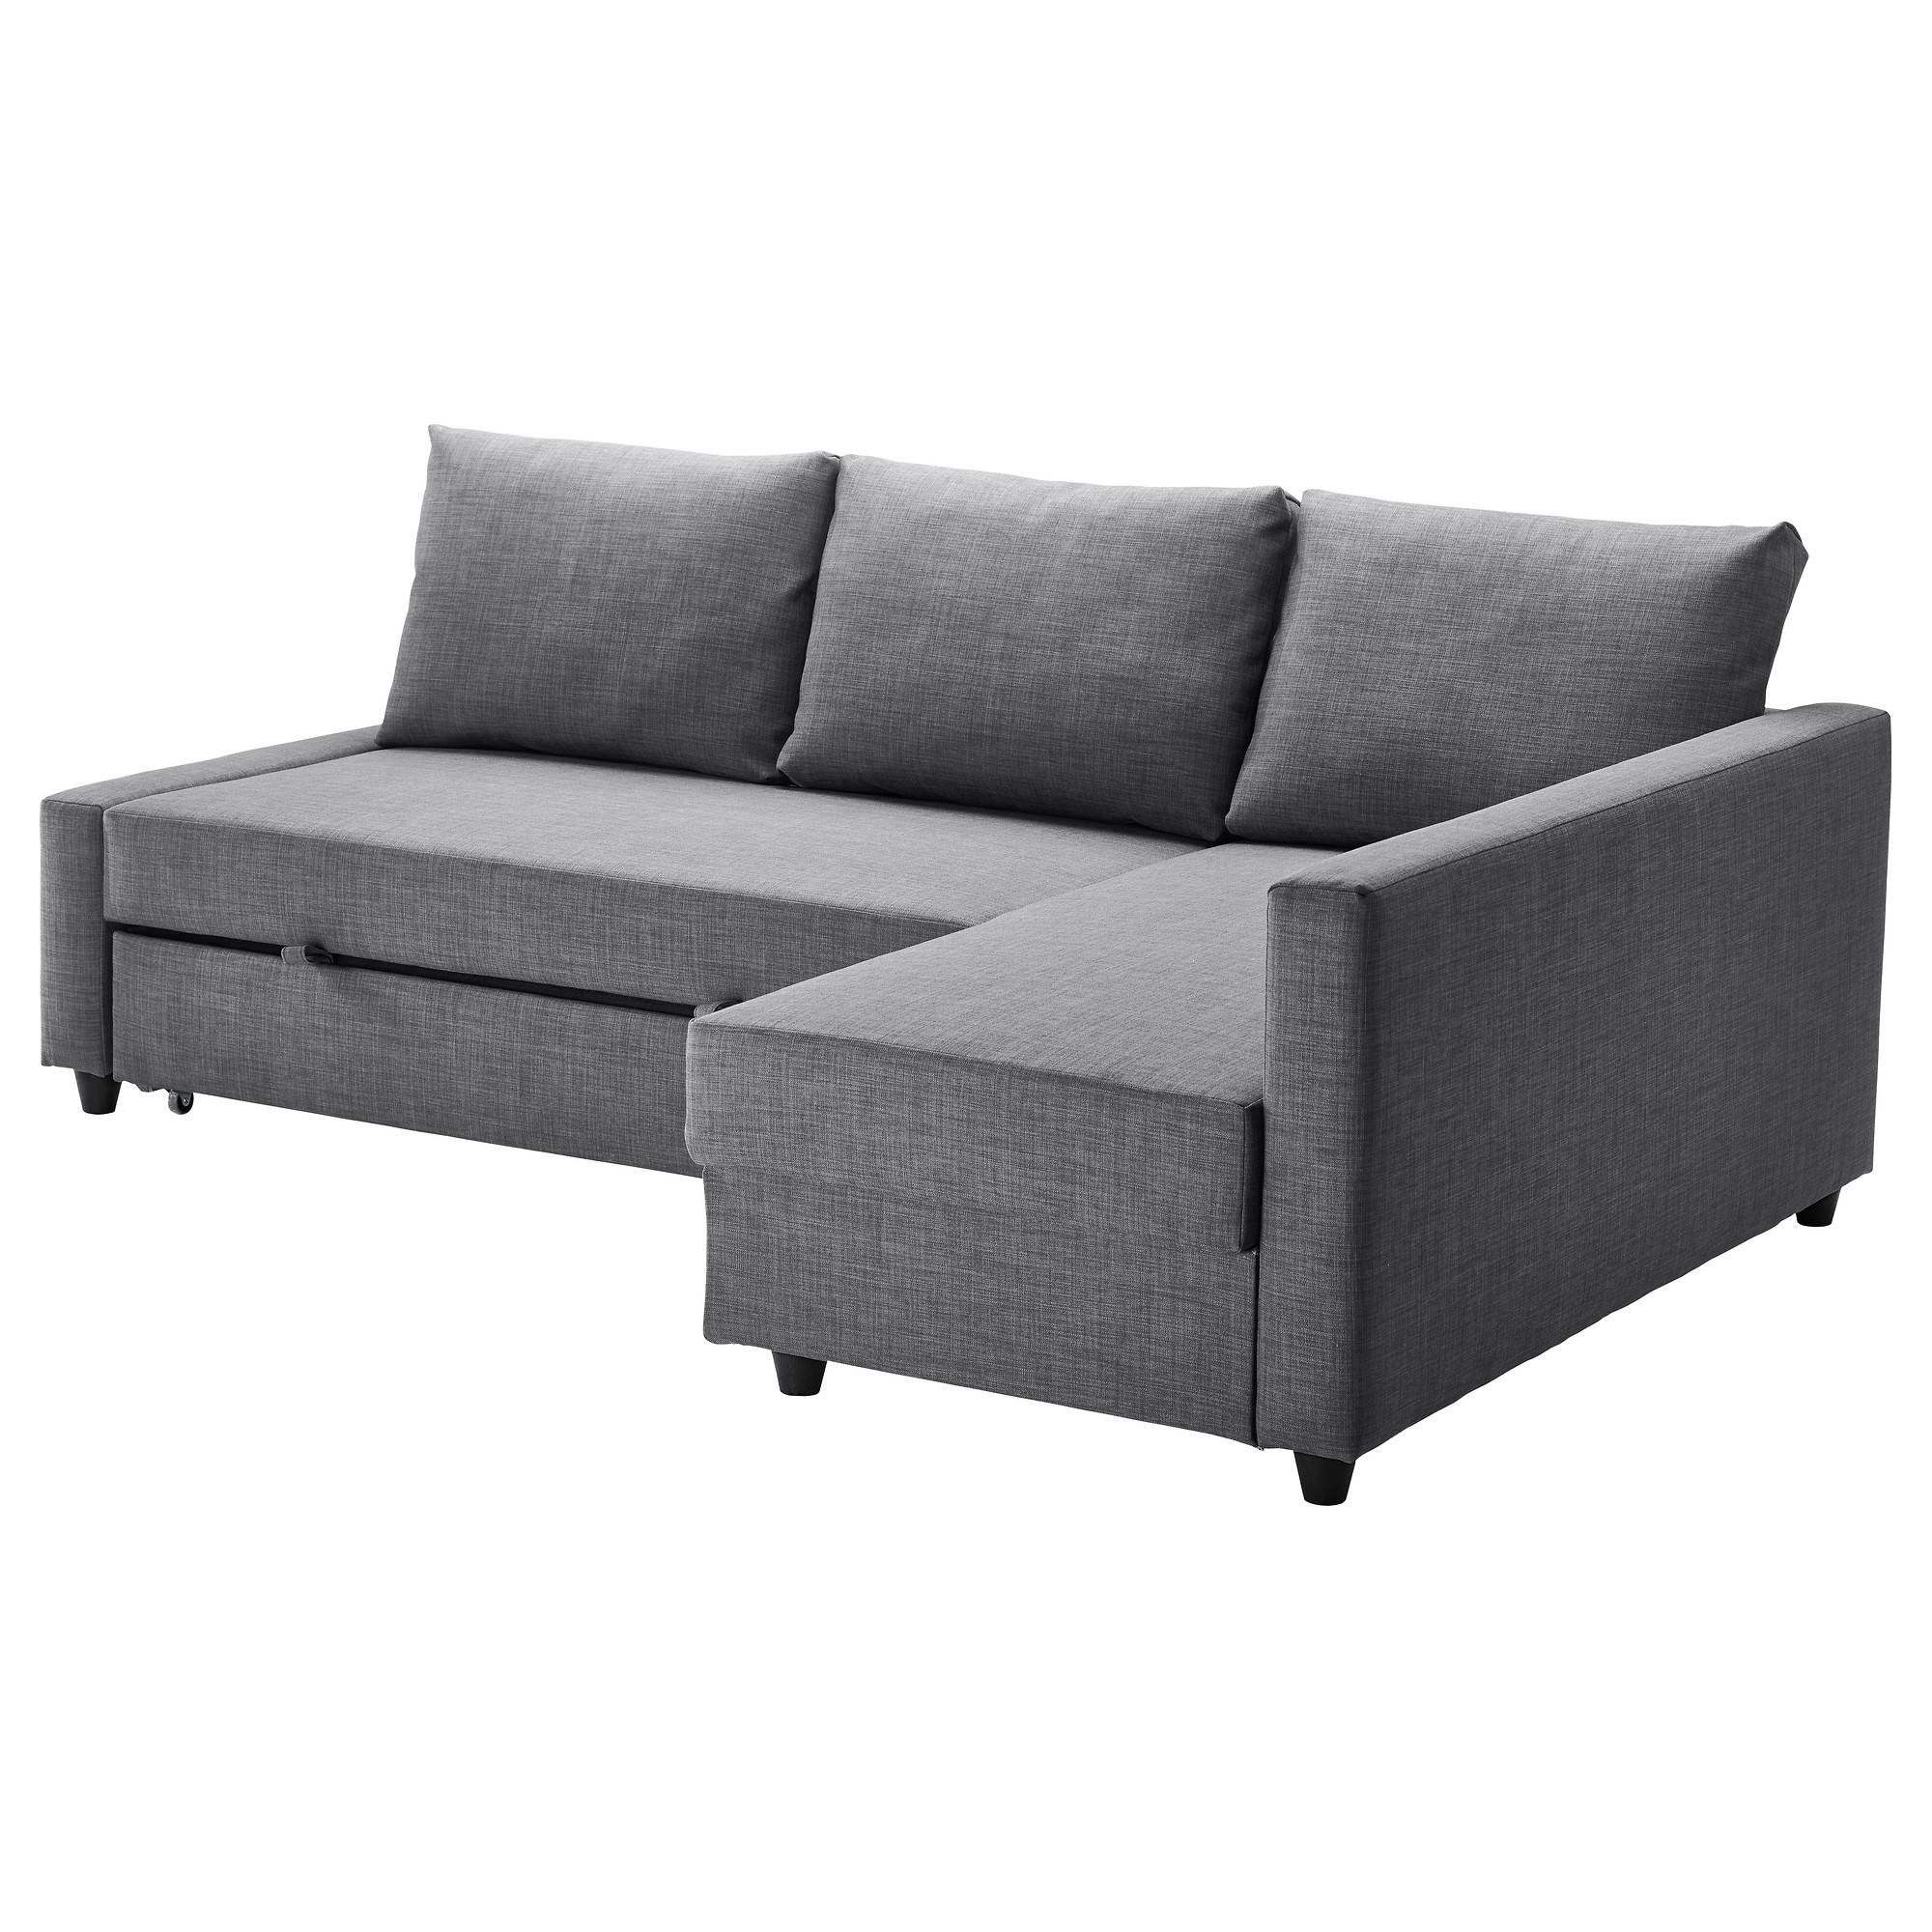 Sofa Beds & Futons - Ikea for Sleeper Sofa Sectional Ikea (Image 19 of 25)